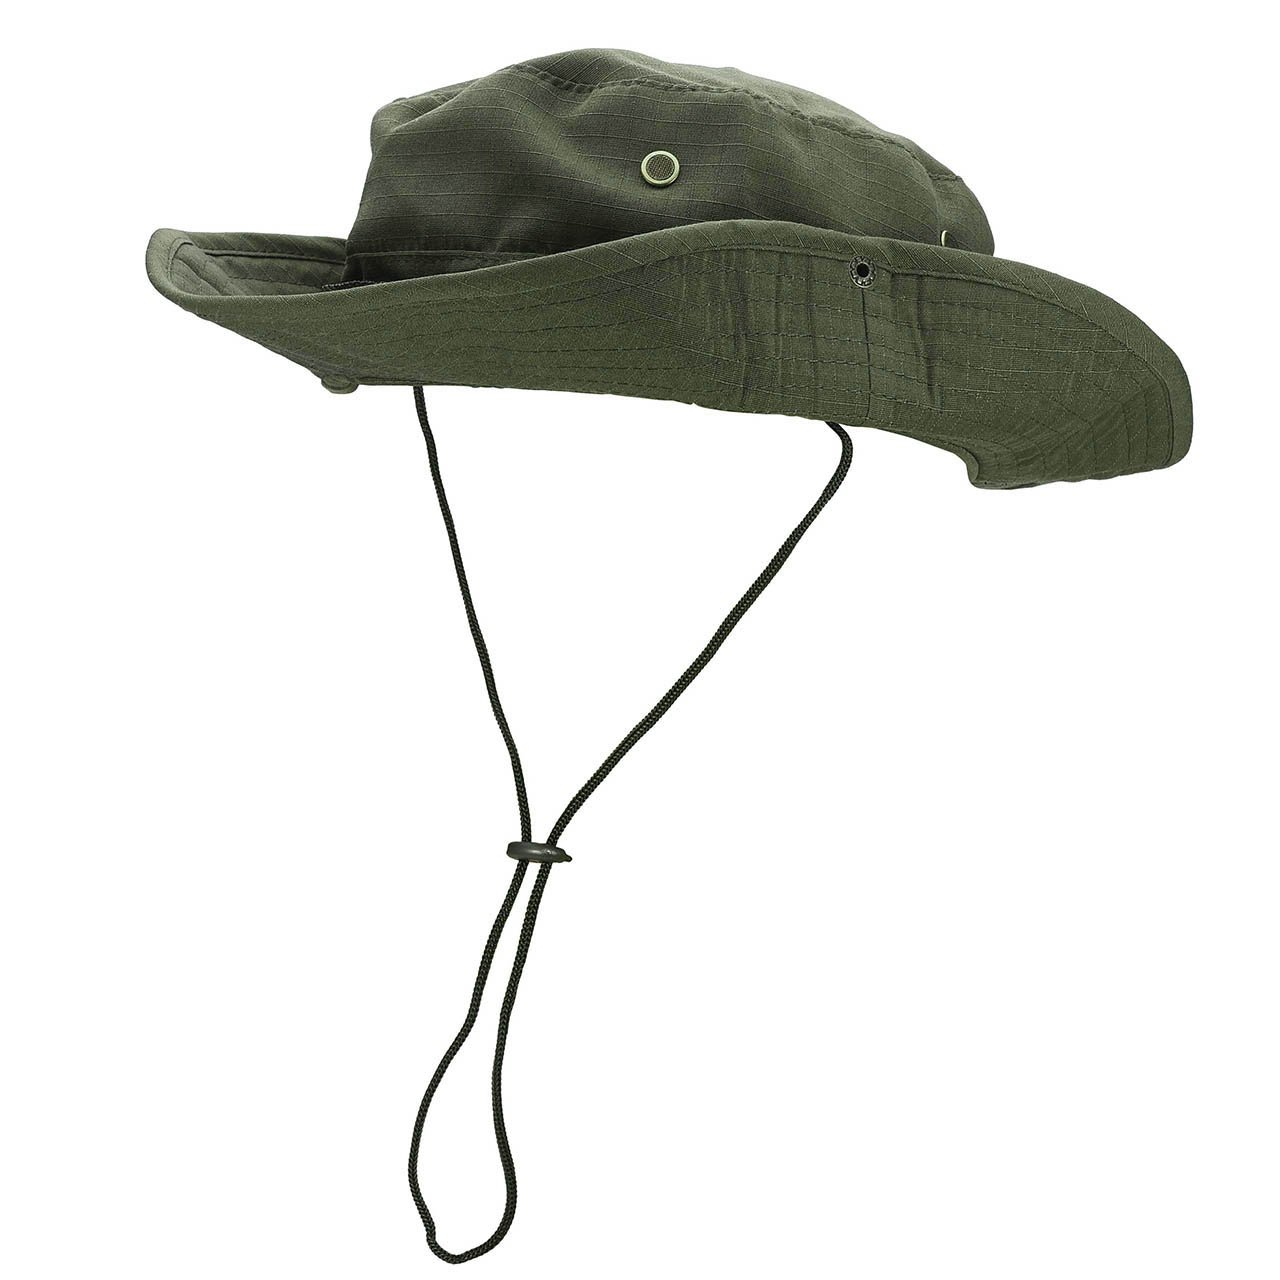 0c517a37632 Amazon.com  FALETO Outdoor Boonie Hat Wide Brim Breathable Safari Fishing  Hats UV Protection Foldable Military Cap  Clothing